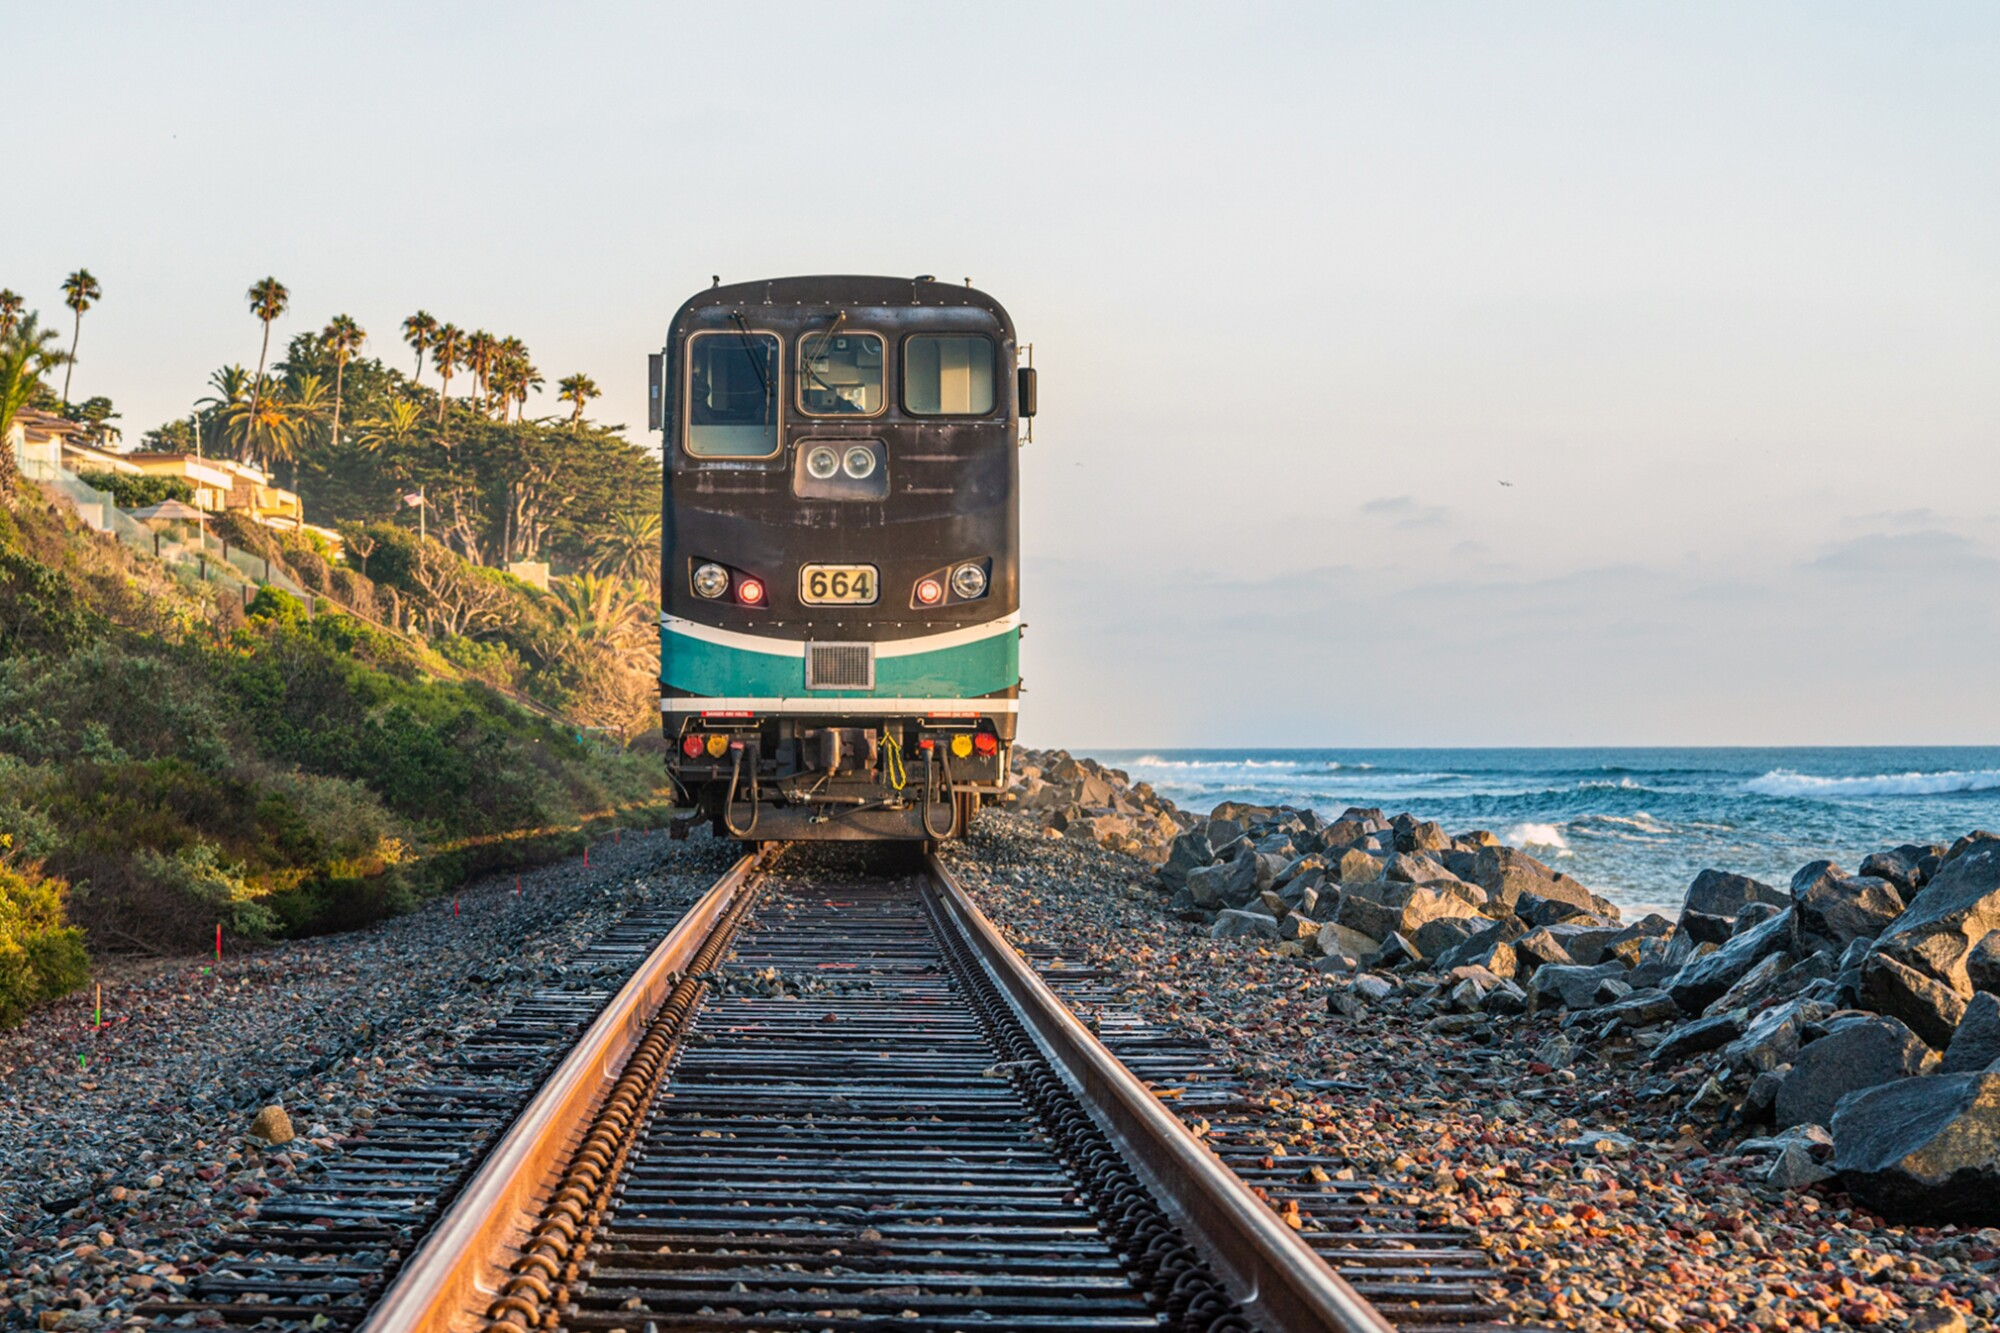 Southbound Metrolink train was stopped in San Clemente by ocean waves washing over the tracks